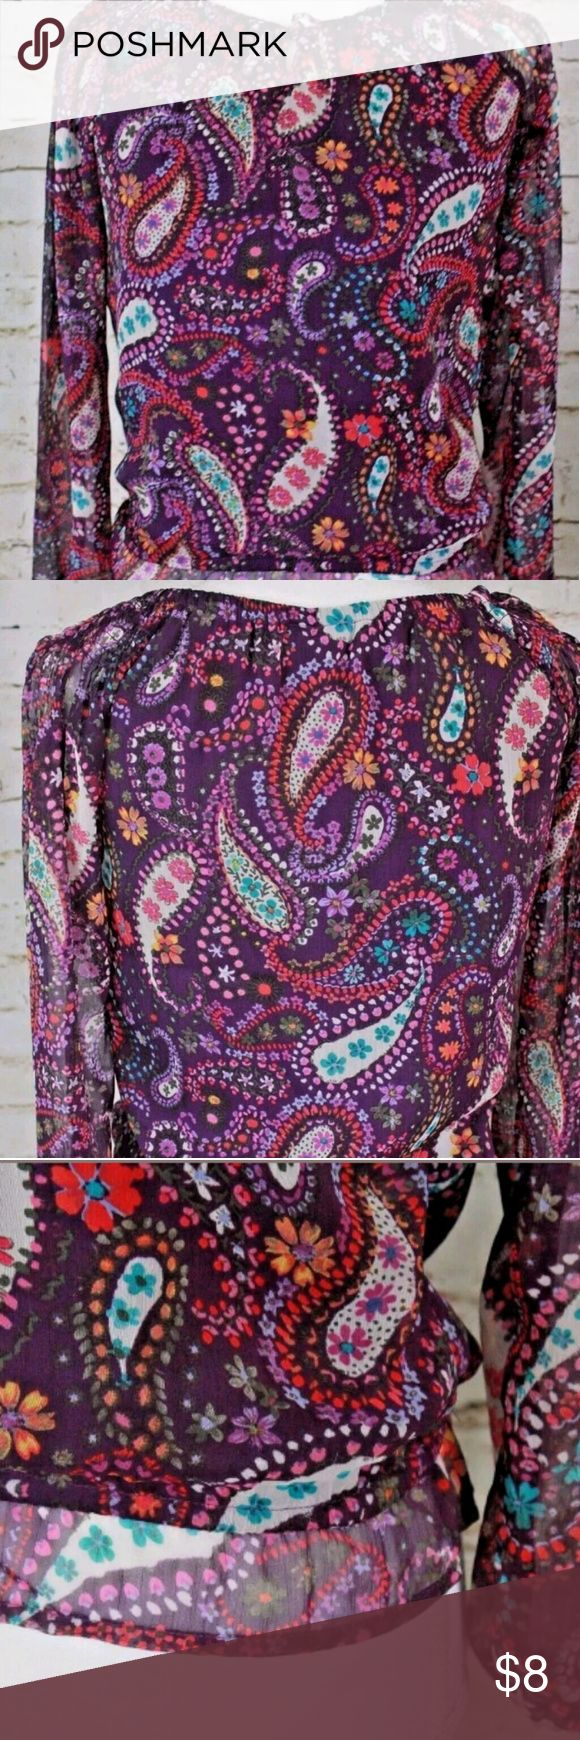 Children's Place size 10/12 Girls Blouse The Children's Place size 10/12 girls long sleeve purple paisley blouse. 100% polyester great pre-owned condition. Comes from a smoke free home.? Children's Place Shirts & Tops Blouses